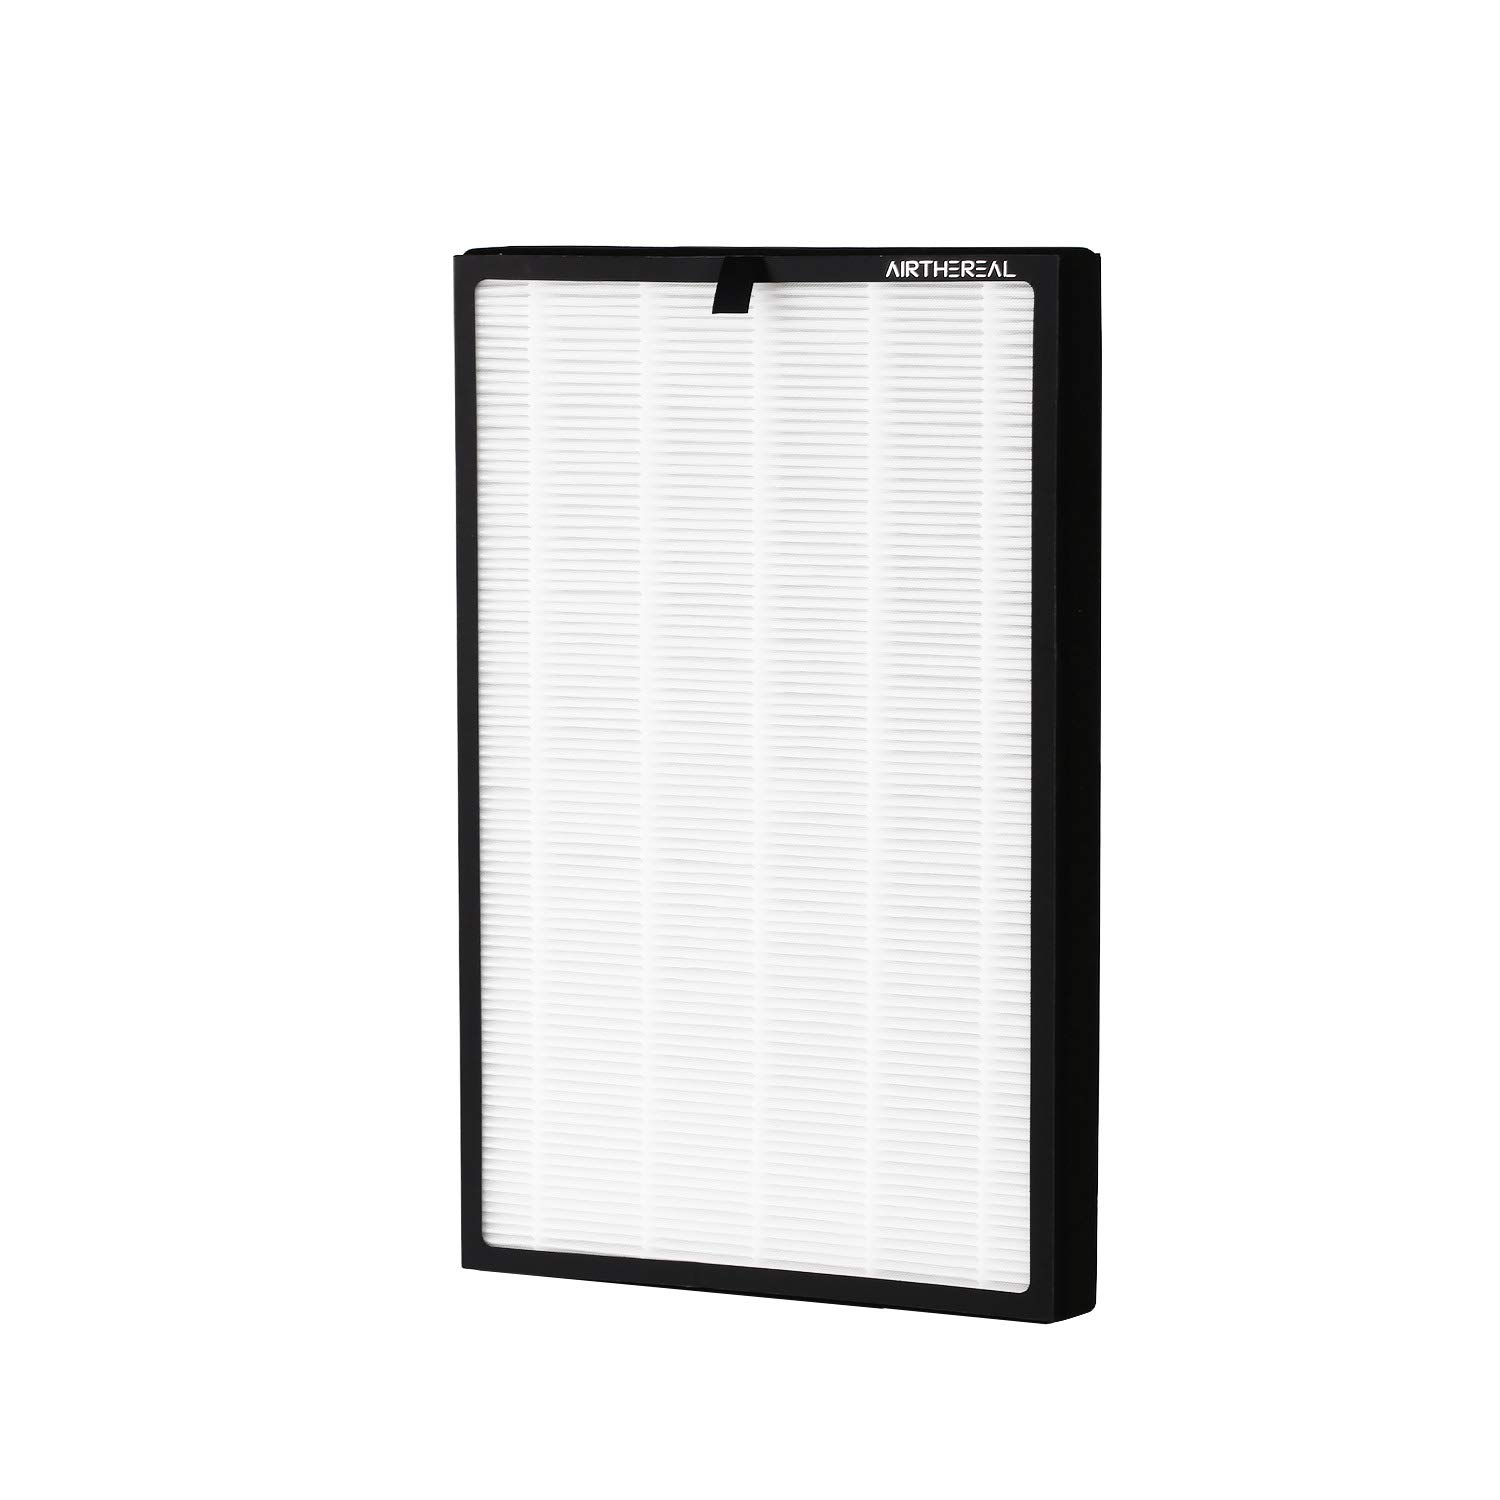 Airthereal APH260 HEPA Air Purifier Replacement Filter, 7-in-1 HEPA Technology, Replacing Every 6-8 Months